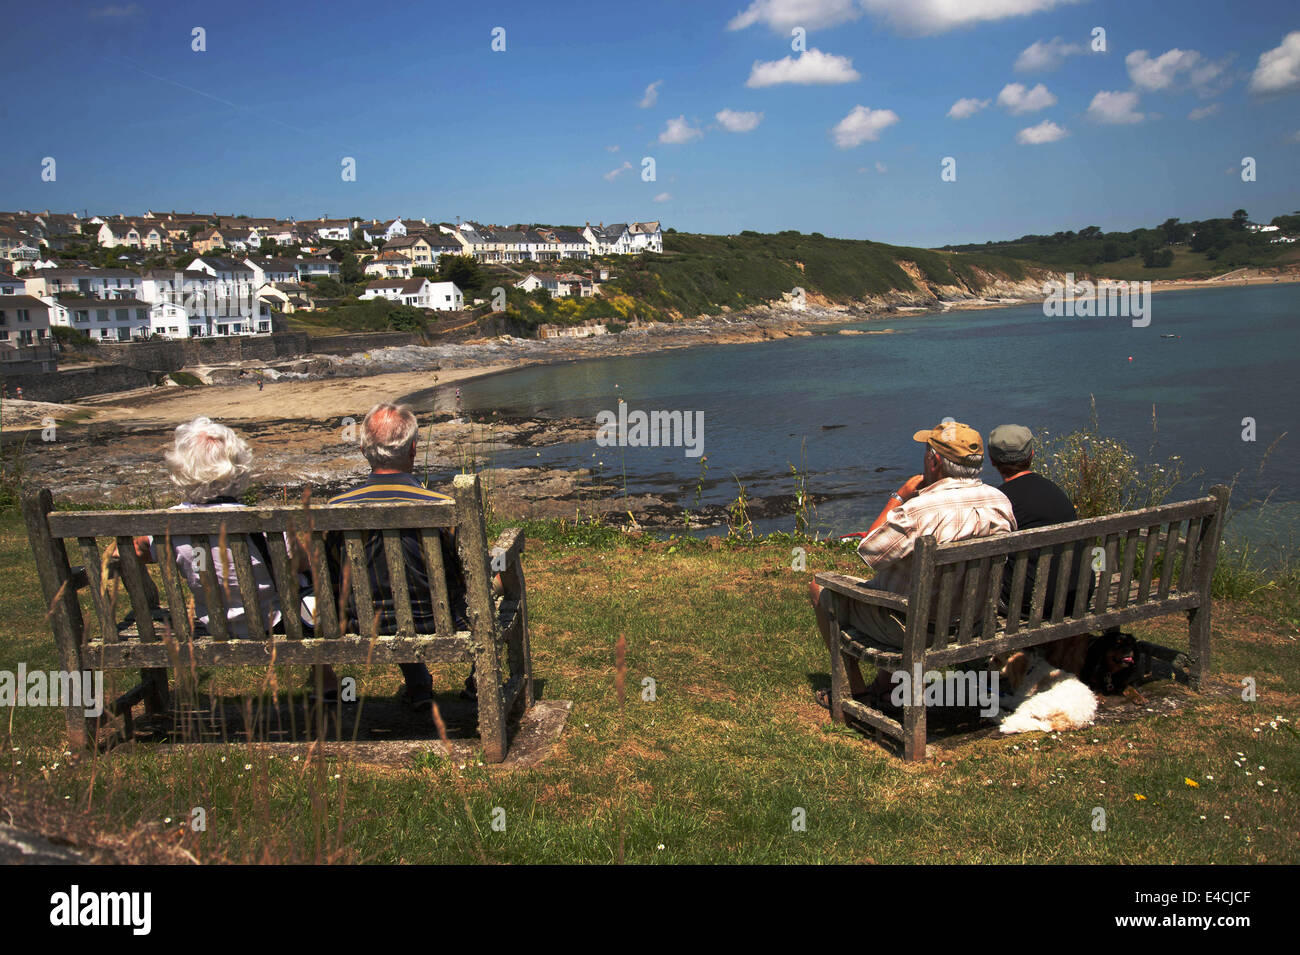 Cornwall. Roseland Peninsular. Portscatho. Two elderly couples sat on wooden benches. - Stock Image